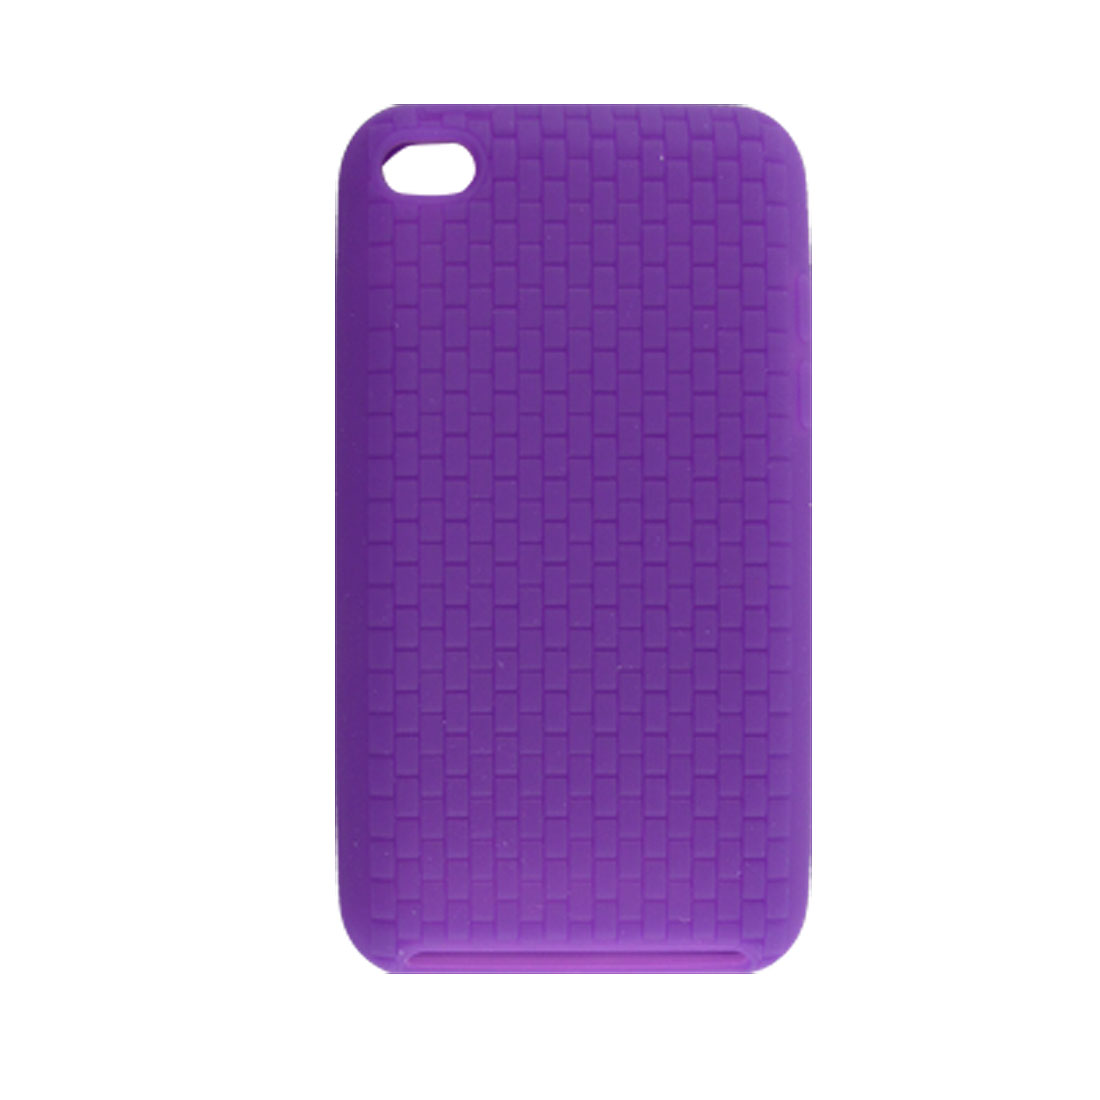 Purple Nonslip Silicone Skin Cover for iPod Touch 4G